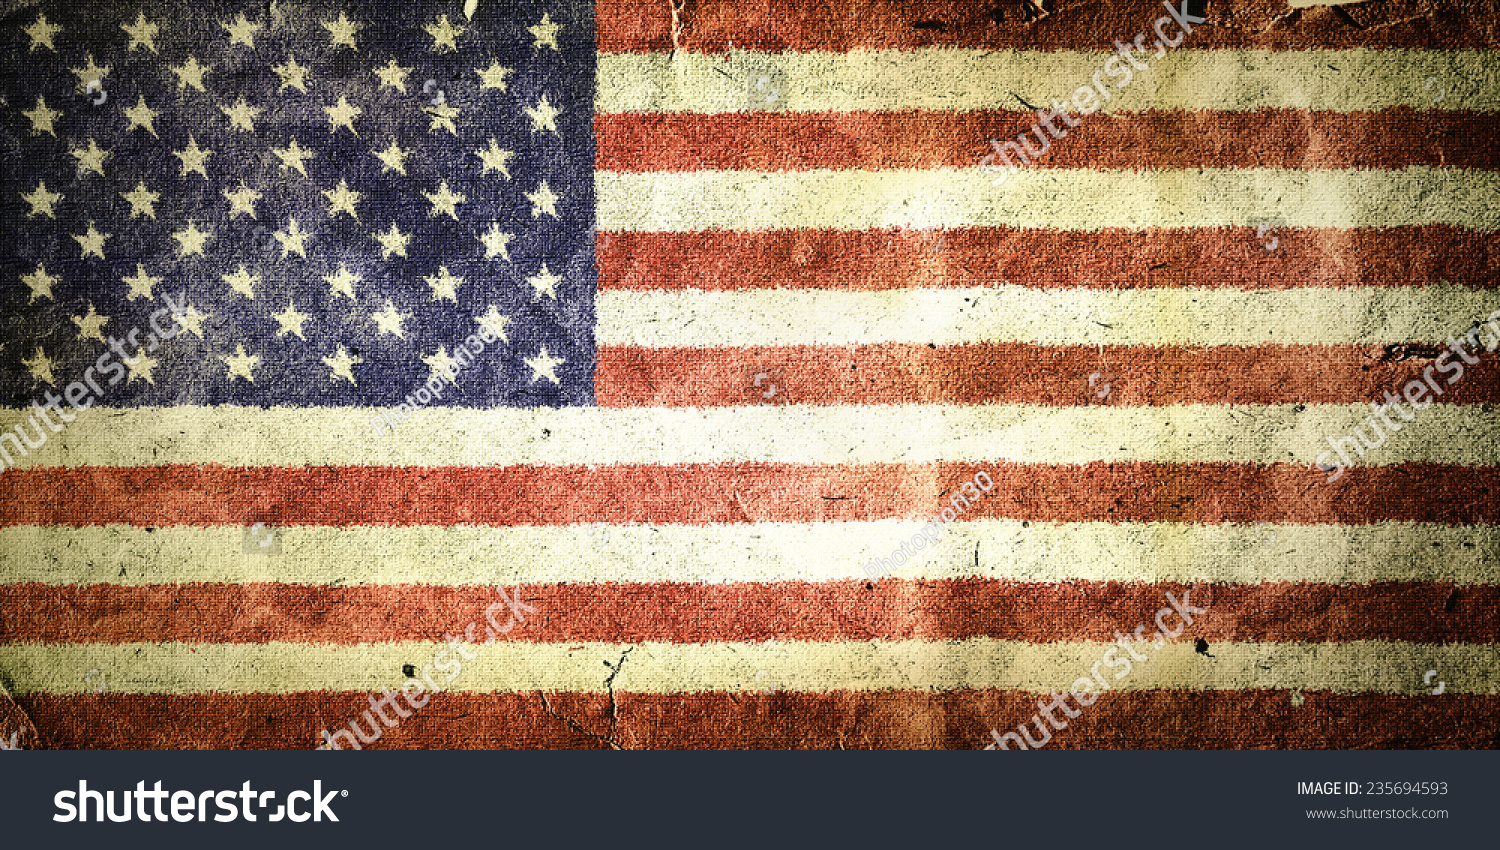 Flag United States America Old Vintage Stock Illustration - How old is the united states of america